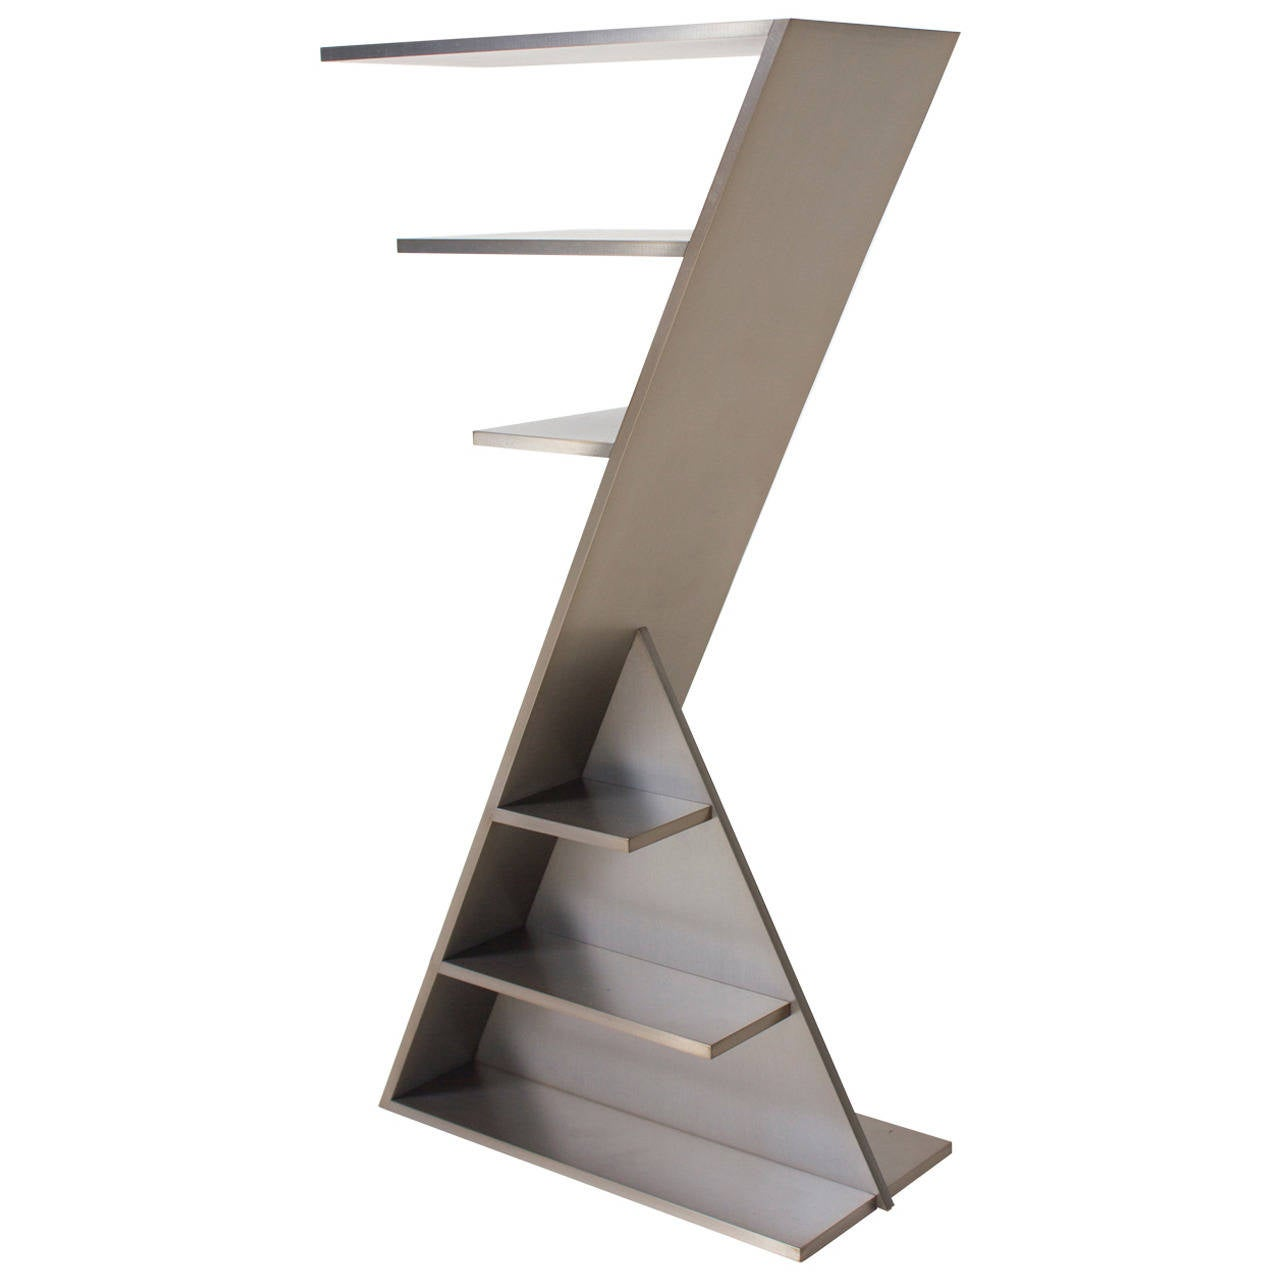 Contemporary Steel 'Duat' Table Lamp by Material Lust, 2015